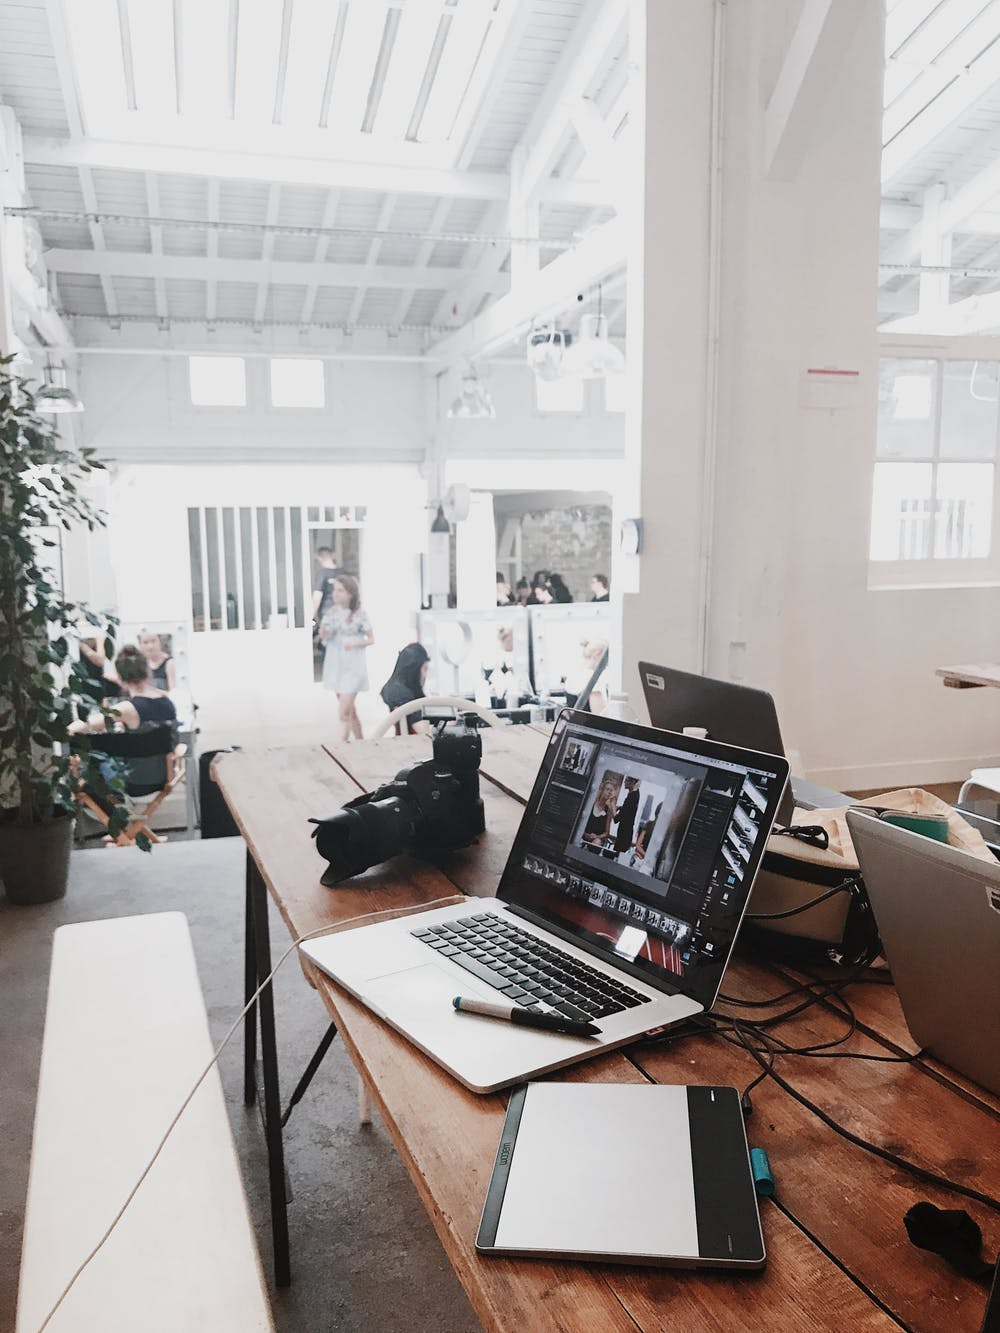 Laptop and Office